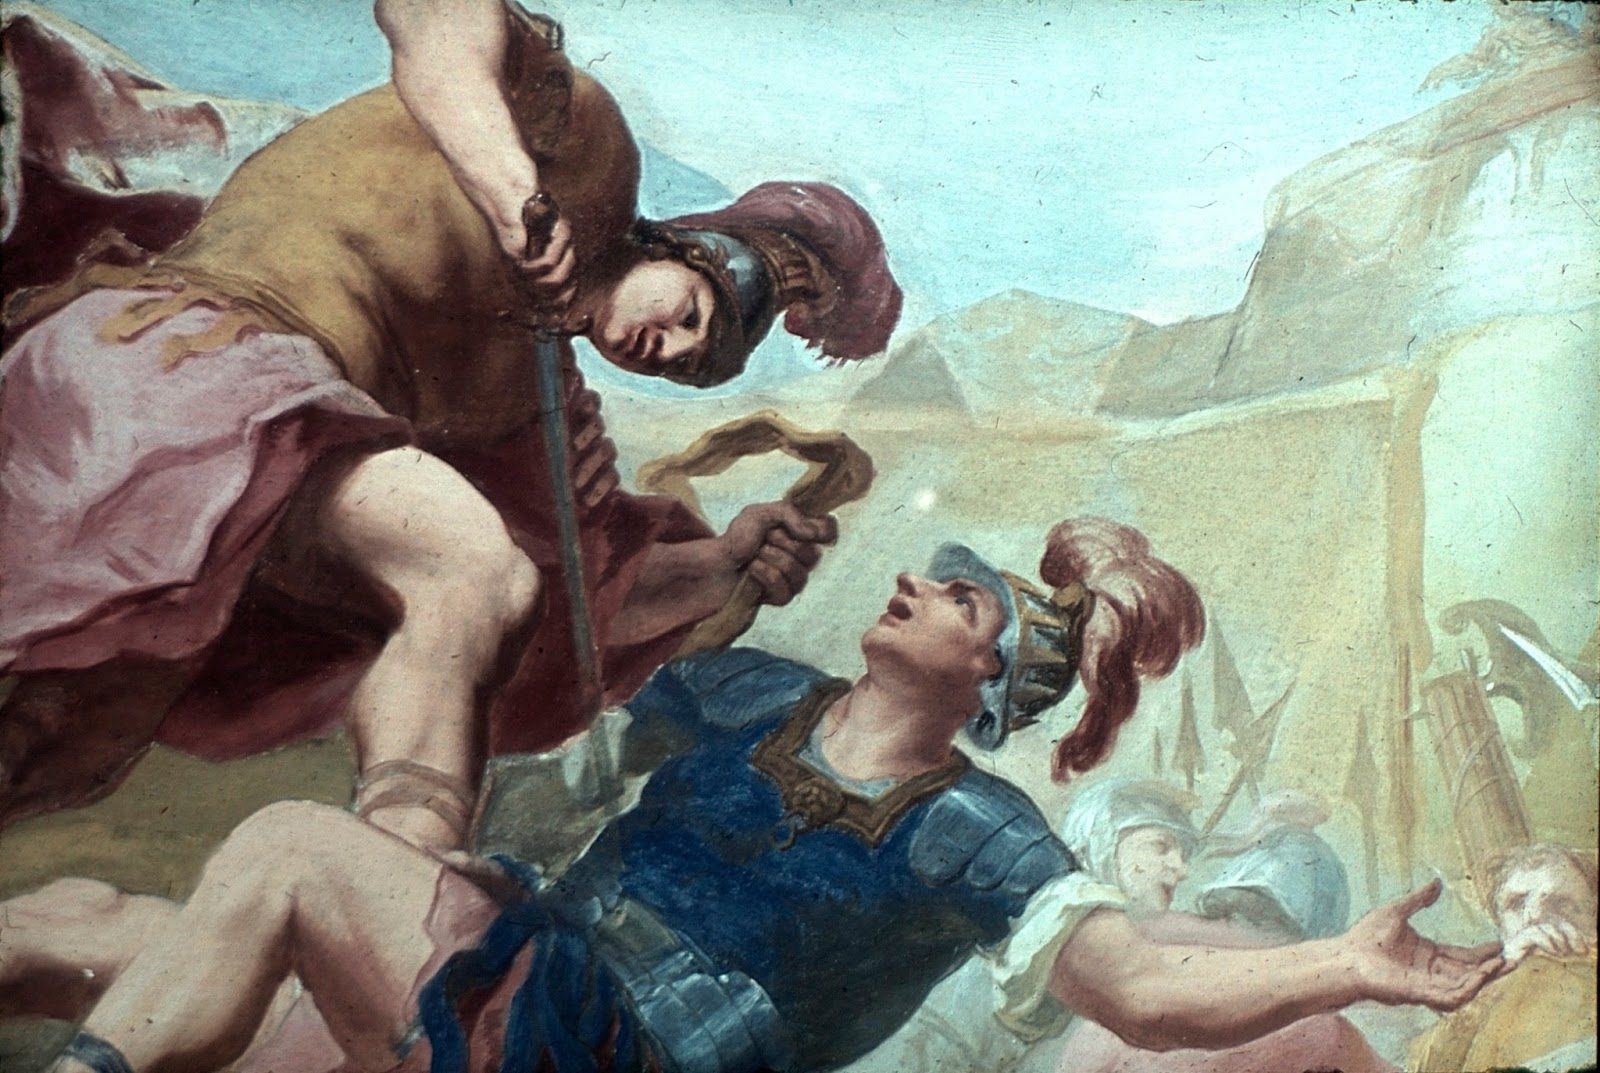 a comparison of heroic traits in aeneas and odysseus Aeneas is the protagonist, or main character, of the aeneid he is the son of anchises, a trojan prince, and venus, the goddess of love virgil portrays ae.